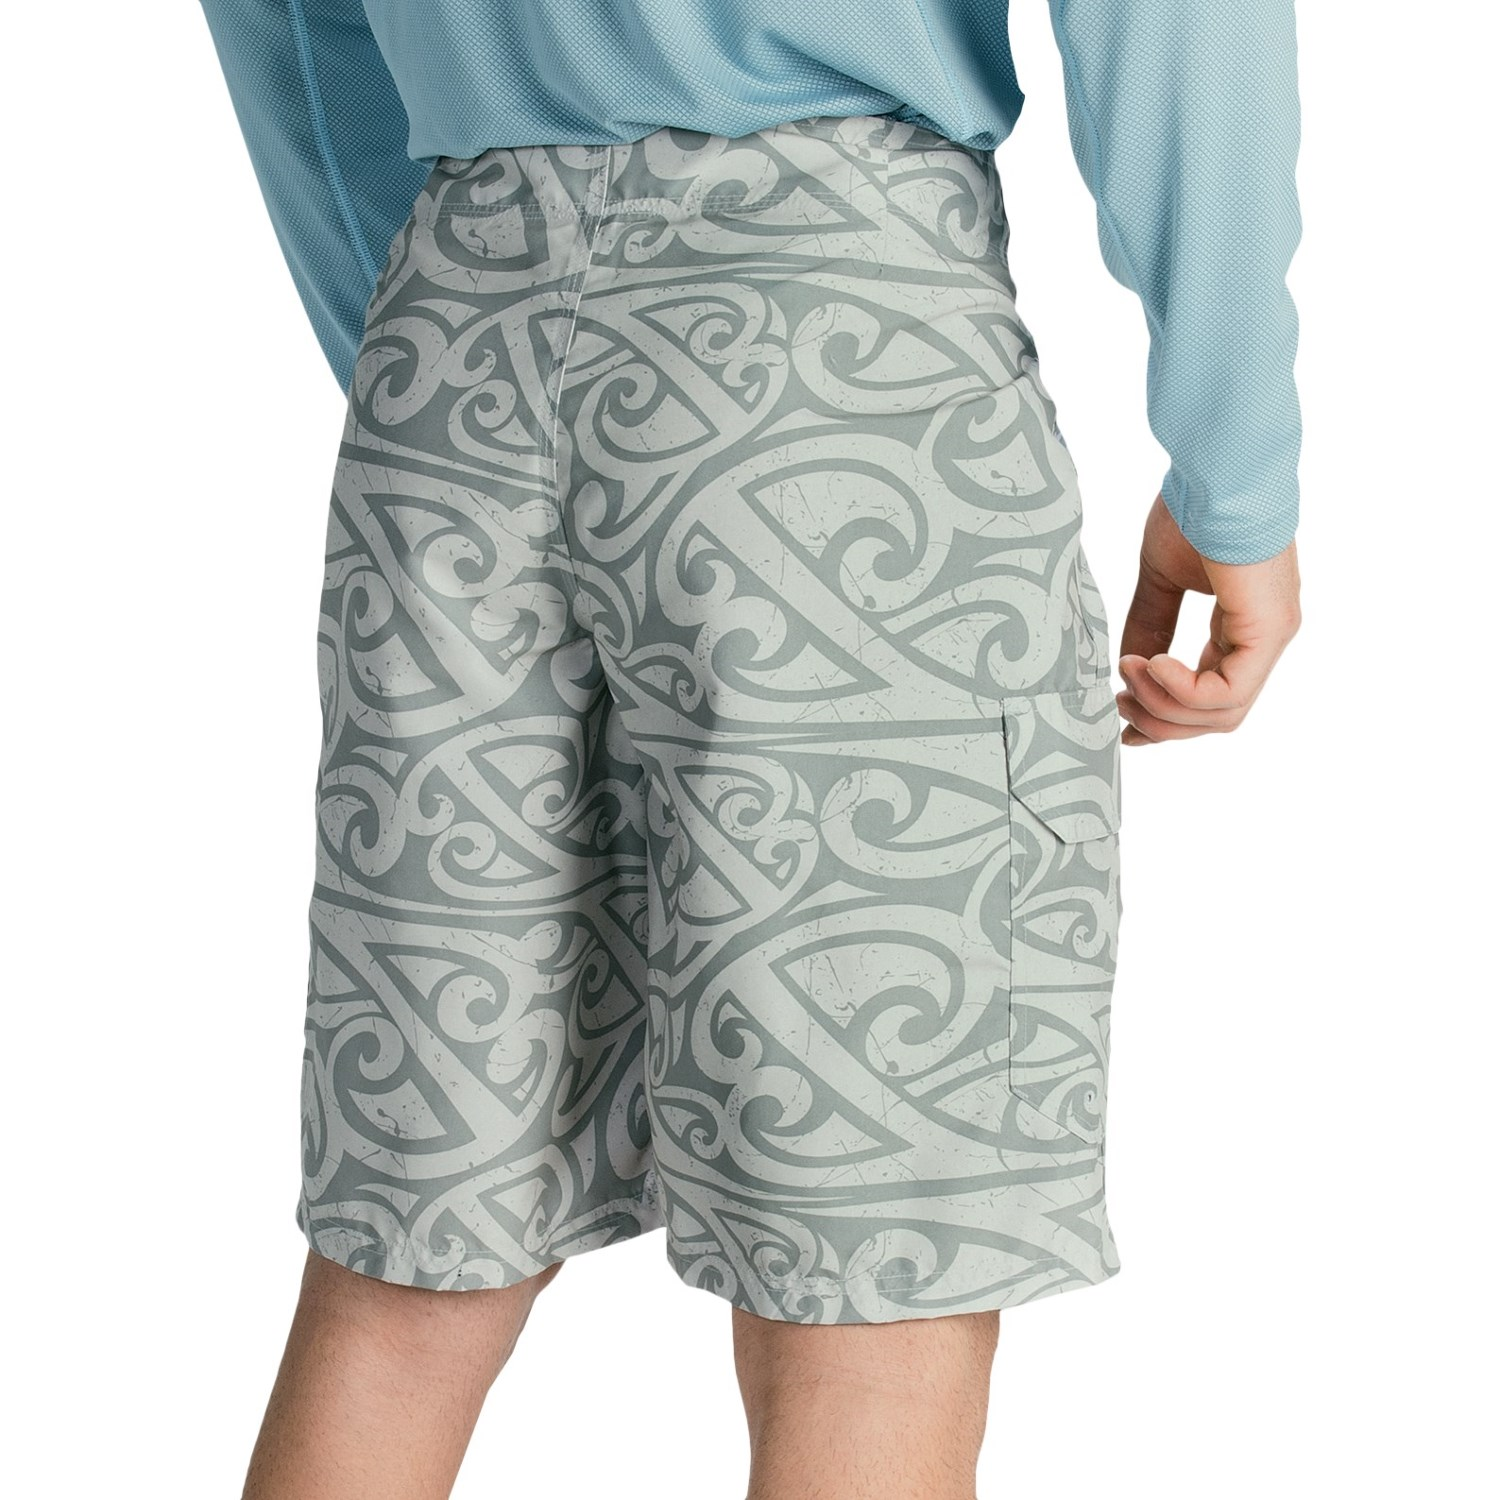 Shop eBay for great deals on RIP CURL Board, Surf Shorts for Men. You'll find new or used products in RIP CURL Board, Surf Shorts for Men on eBay. Free shipping on selected items.